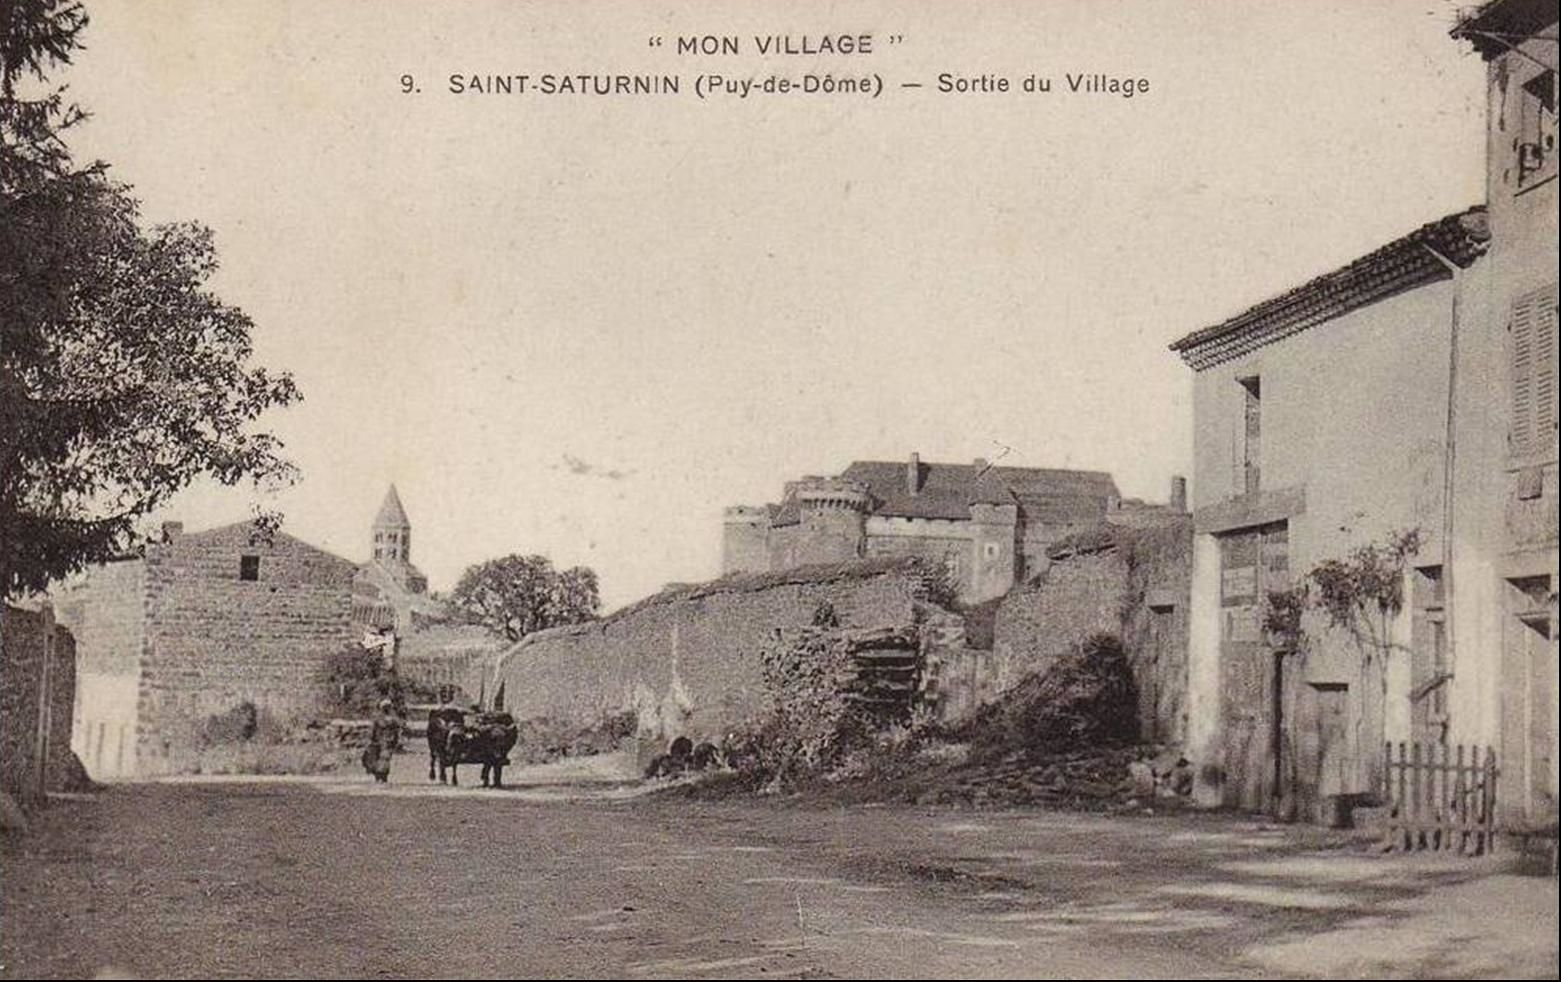 Les villages du Puy de Dome: Saint Saturnin